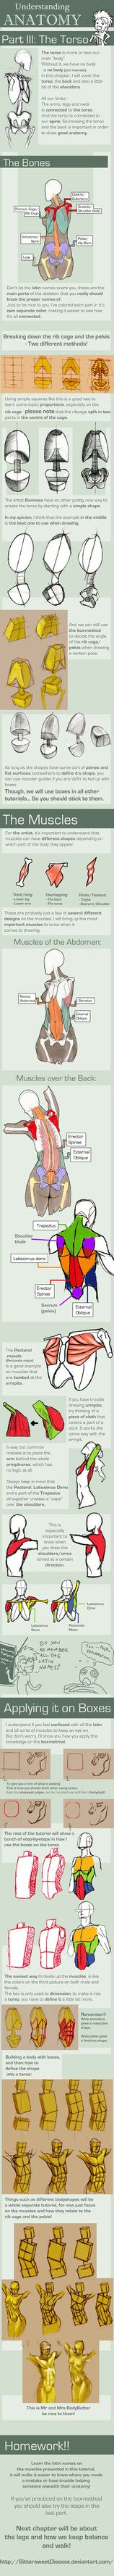 38 best Anatomy images on Pinterest | Anatomy reference, Human ...